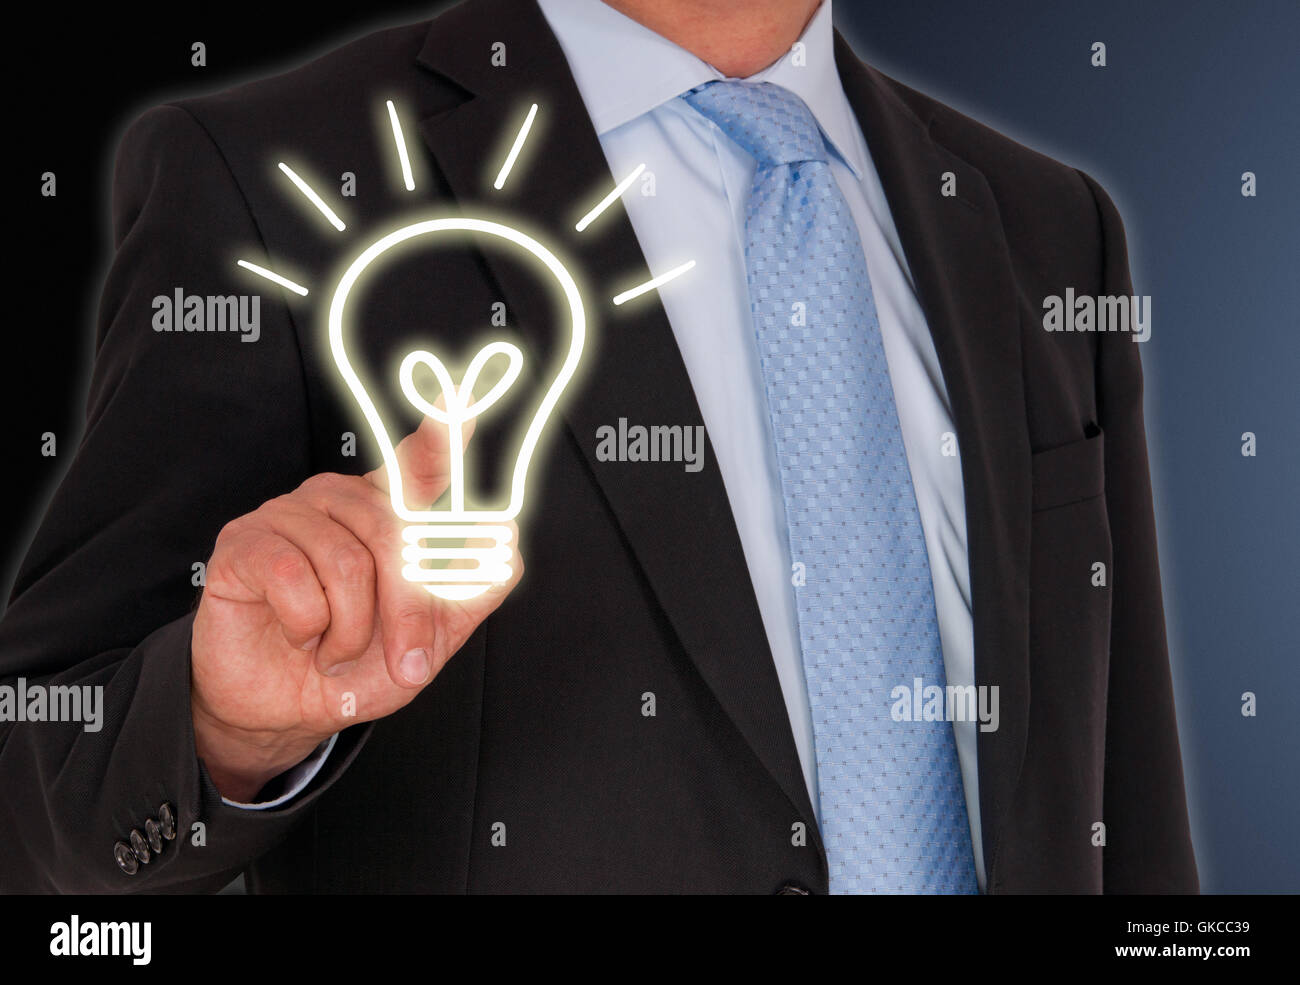 innovations and ideas - Stock Image